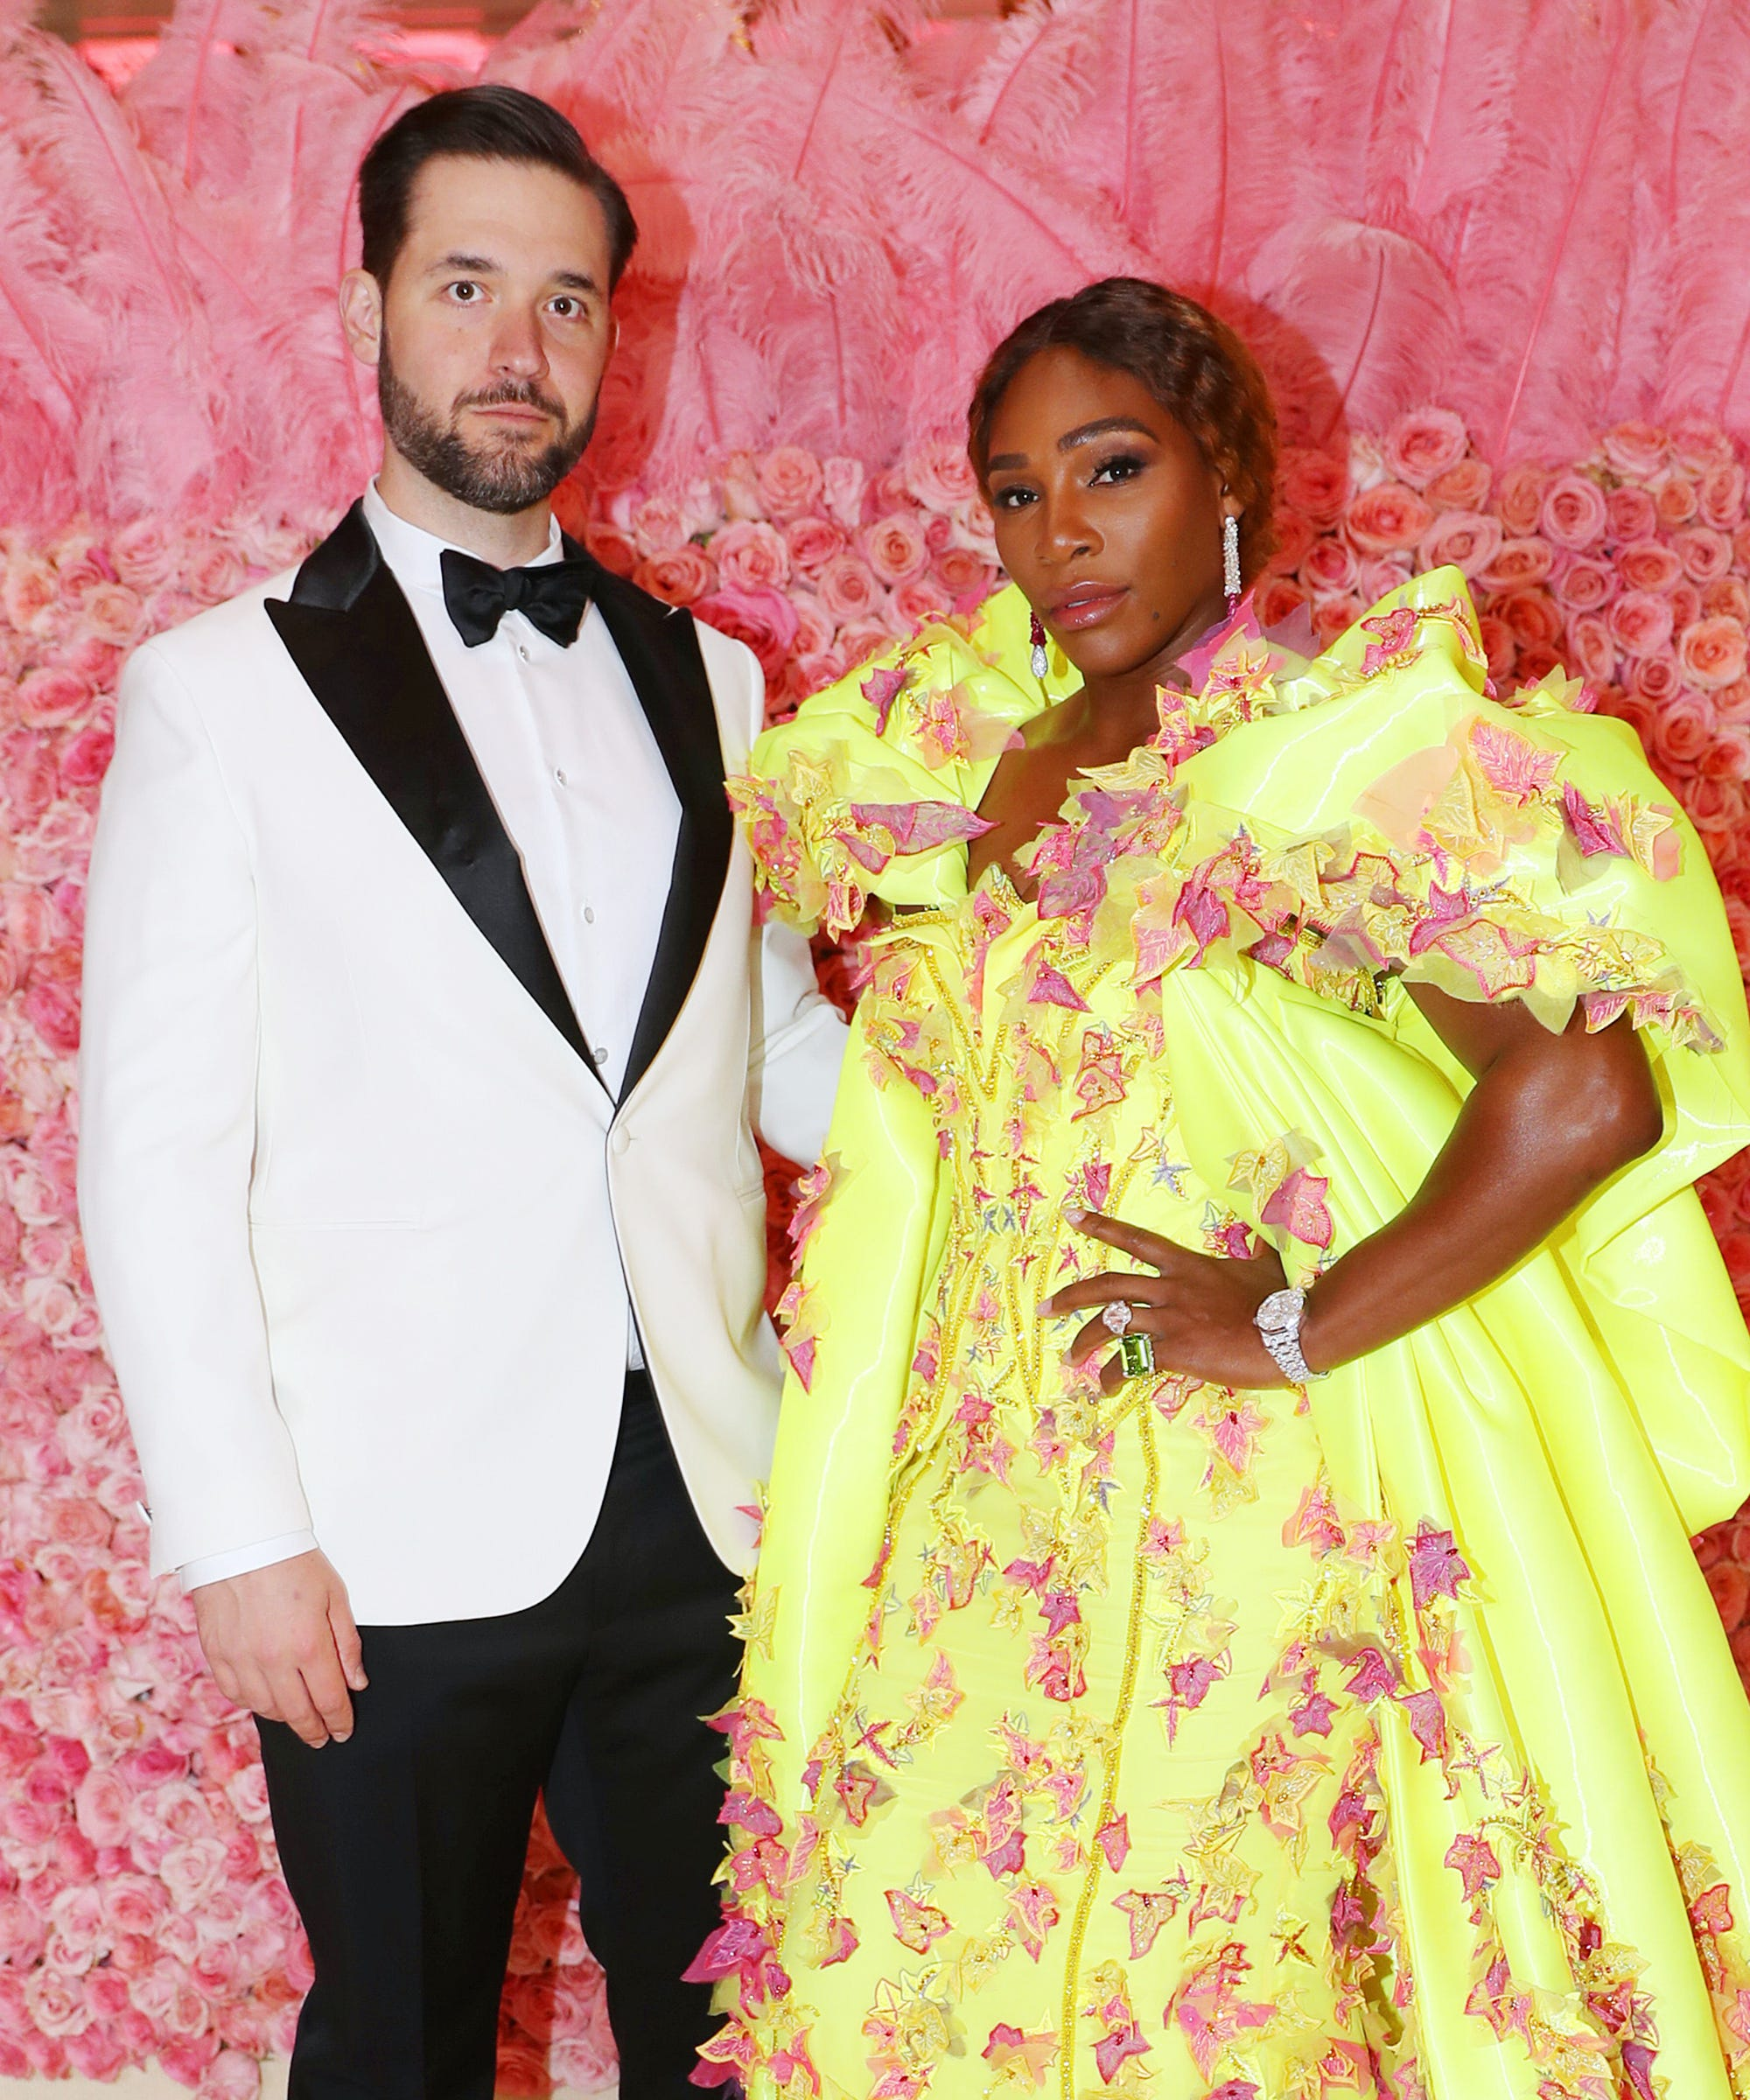 How Serena Williams Met Her Husband Alexis Ohanian